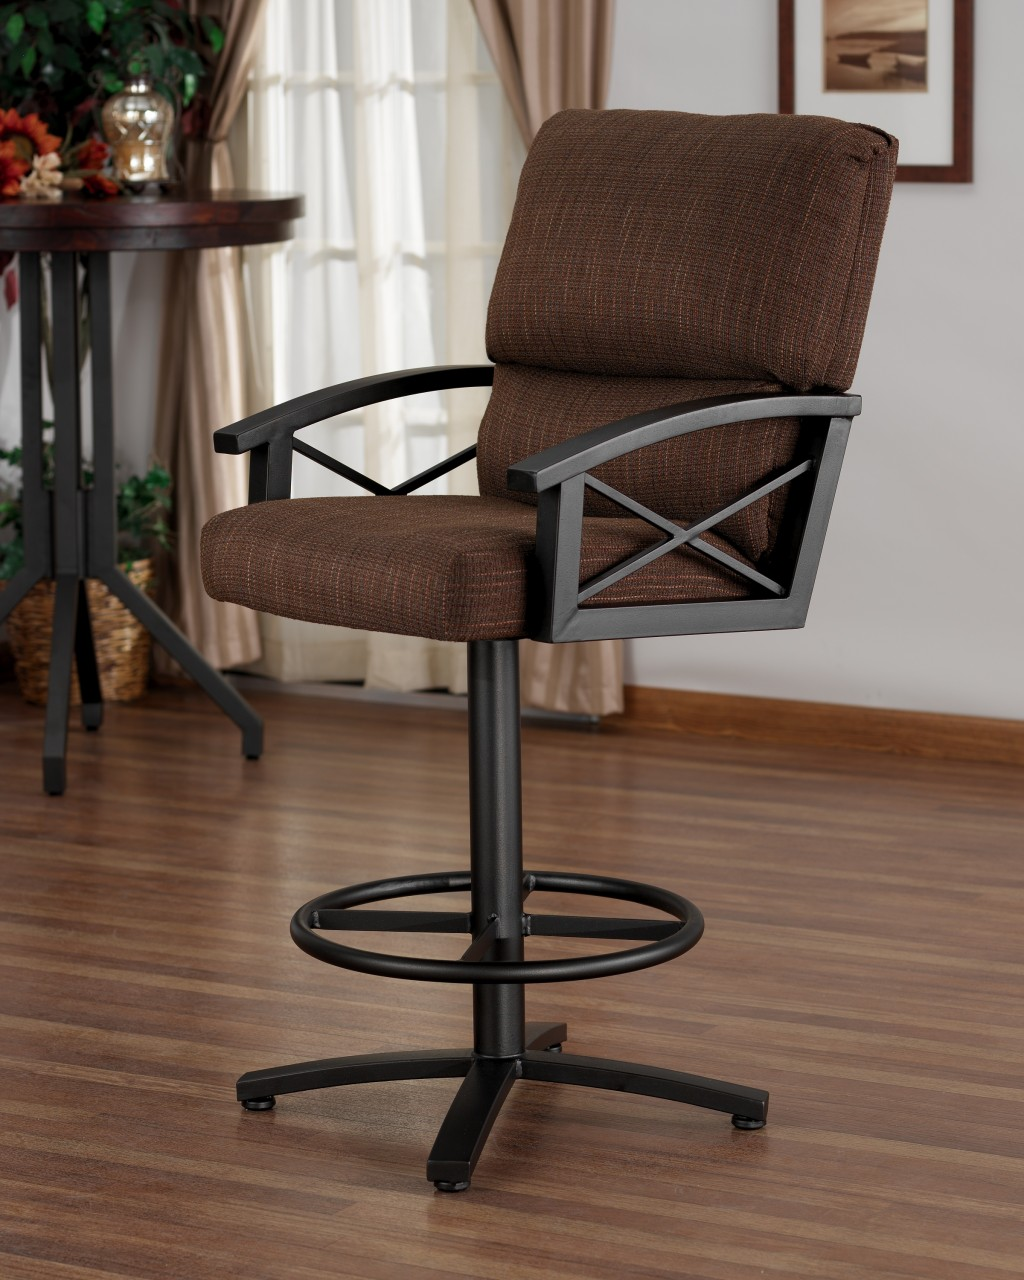 Comfy Counter Height Swivel Bar Stools with Arms